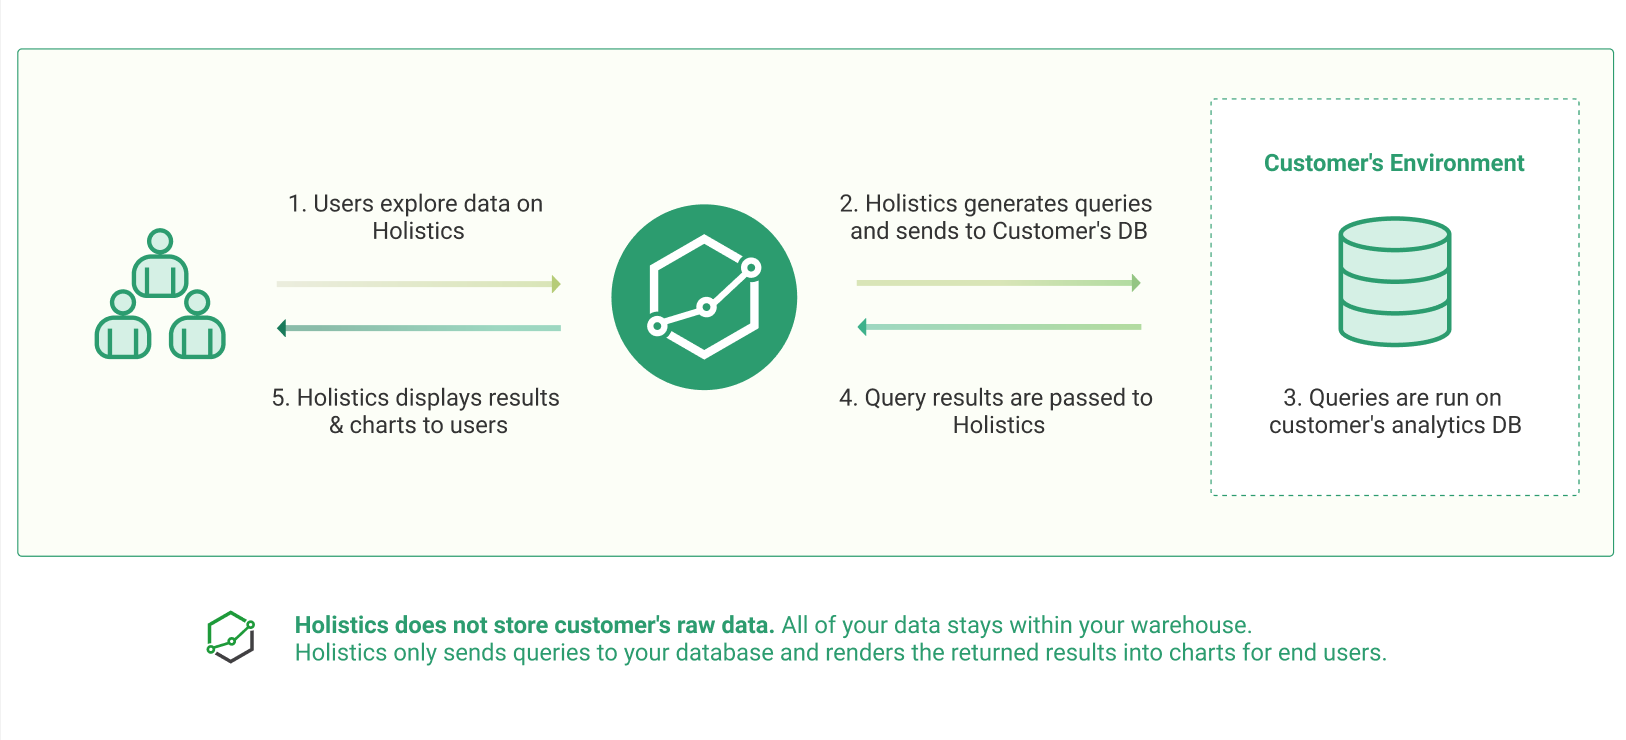 How Holistics works with Customer's Data Warehouse